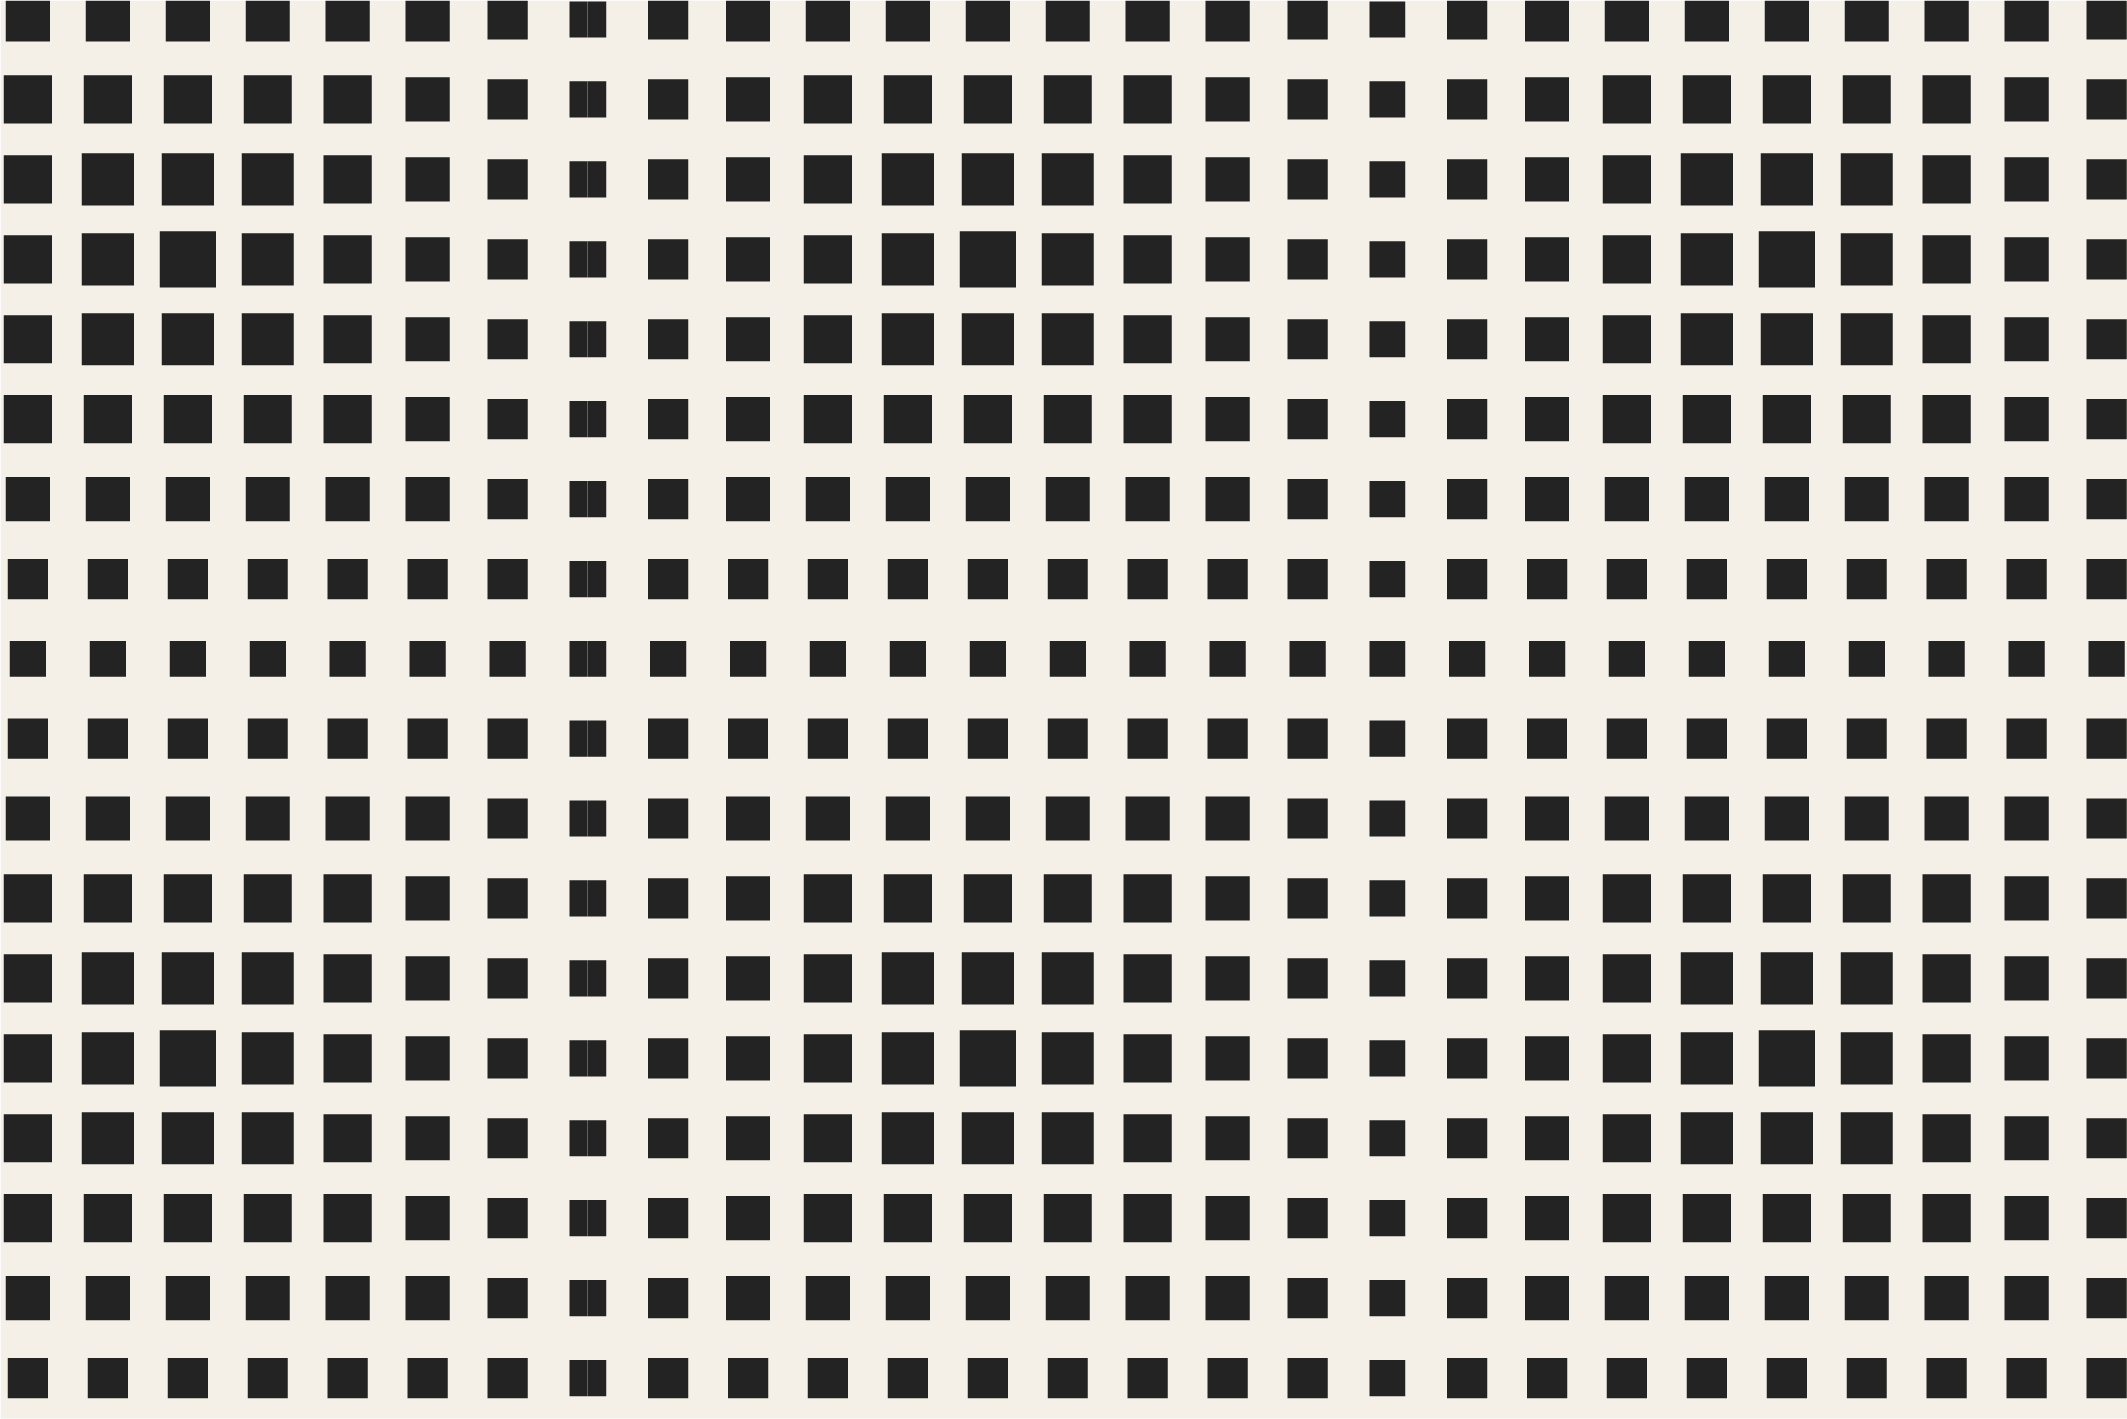 Halftone seamless patterns example image 2